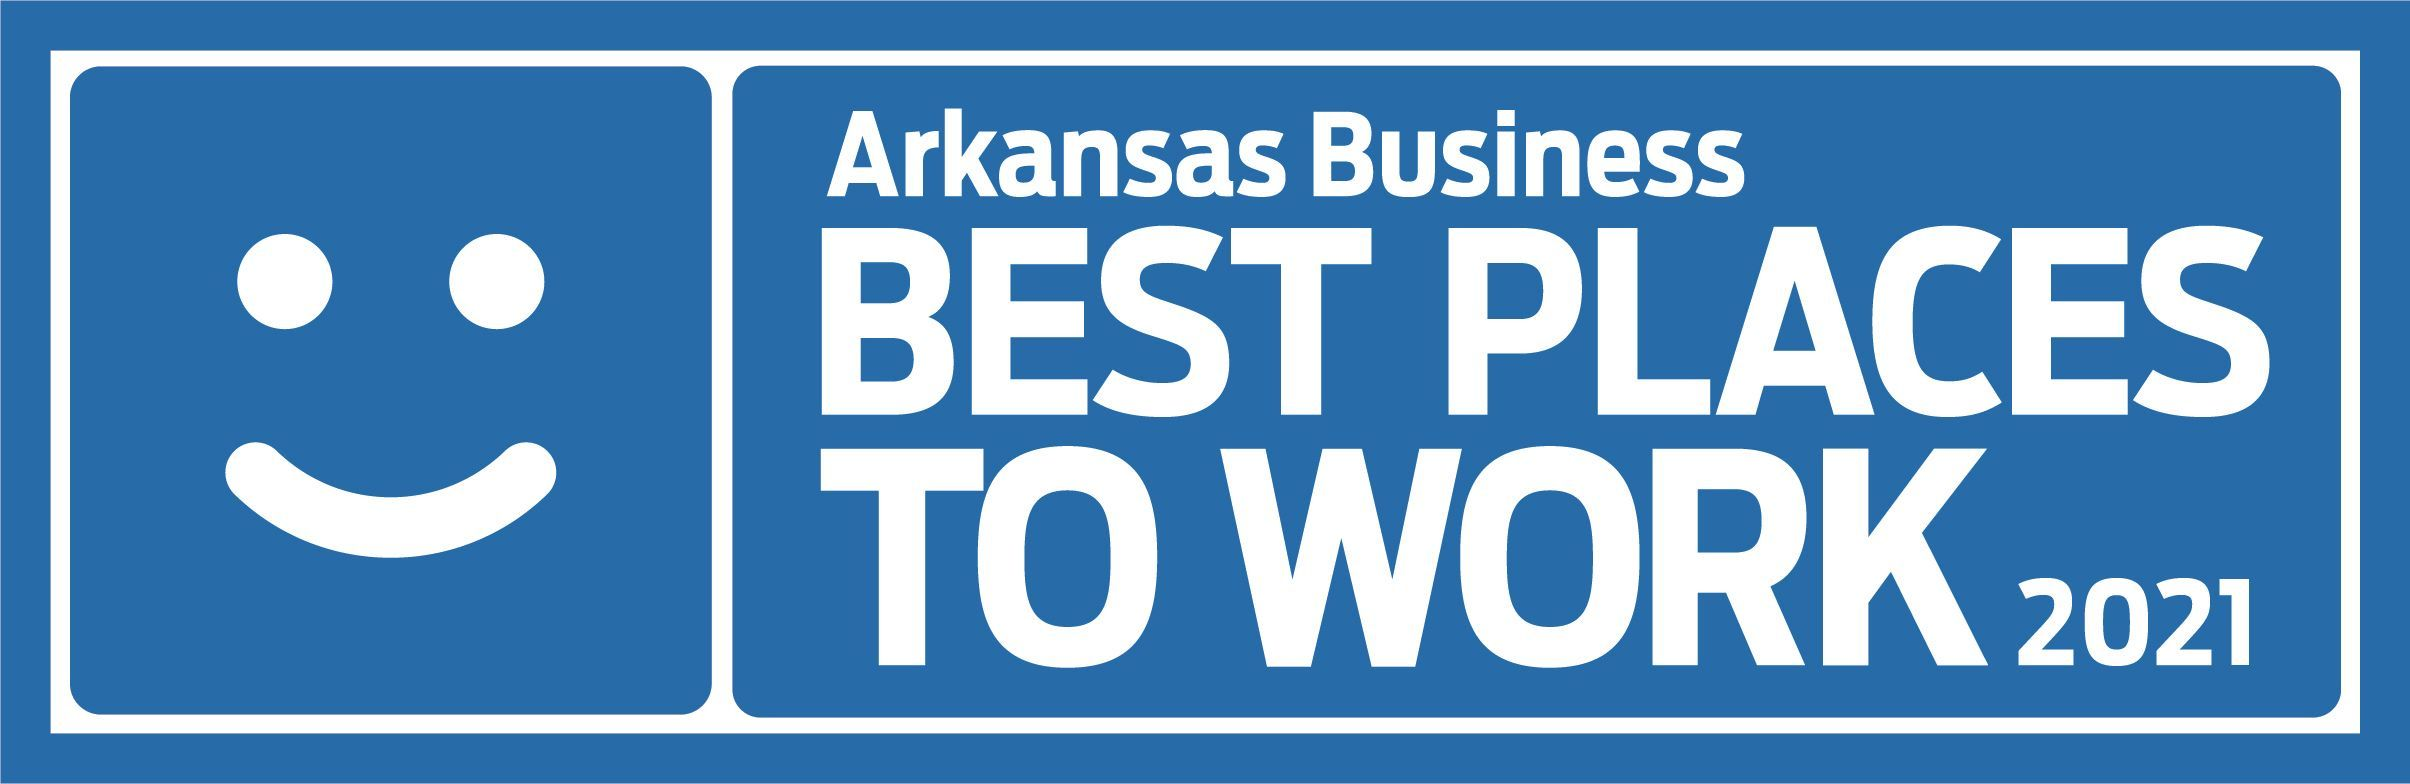 SHARE Foundation named one of the Best Places to Work in Arkansas 2021